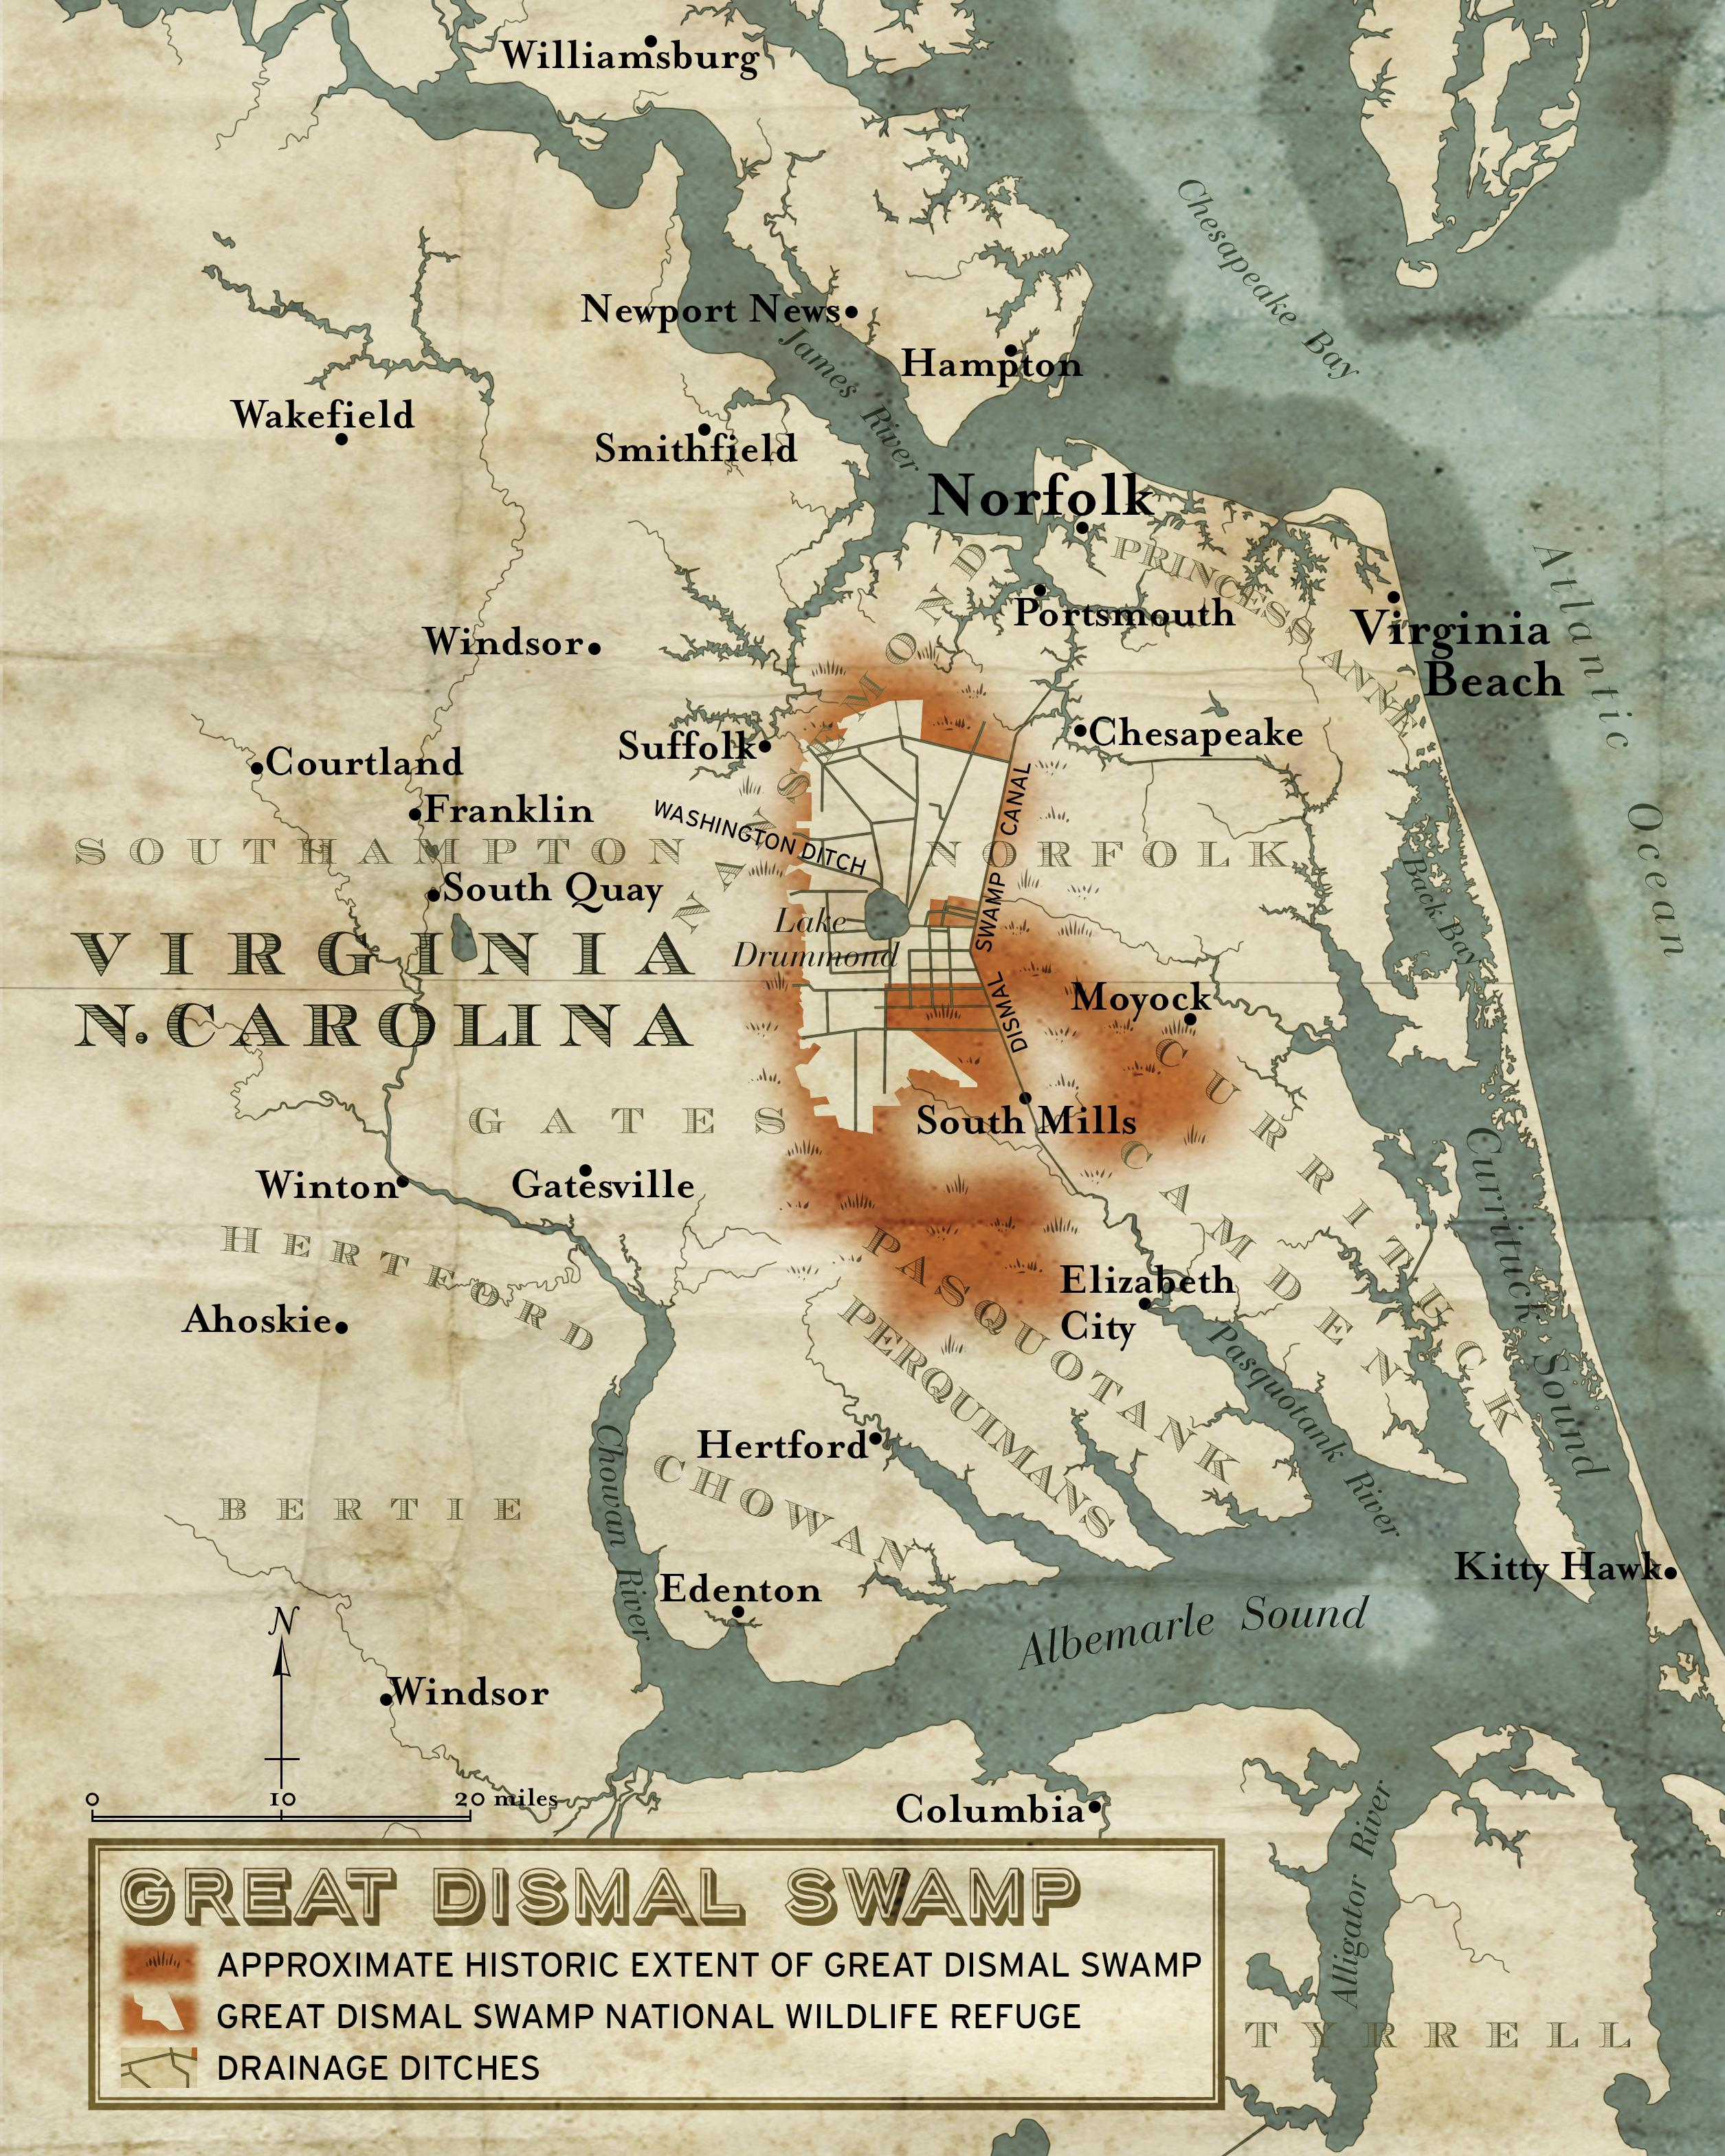 Great Dismal Swamp Historical Map